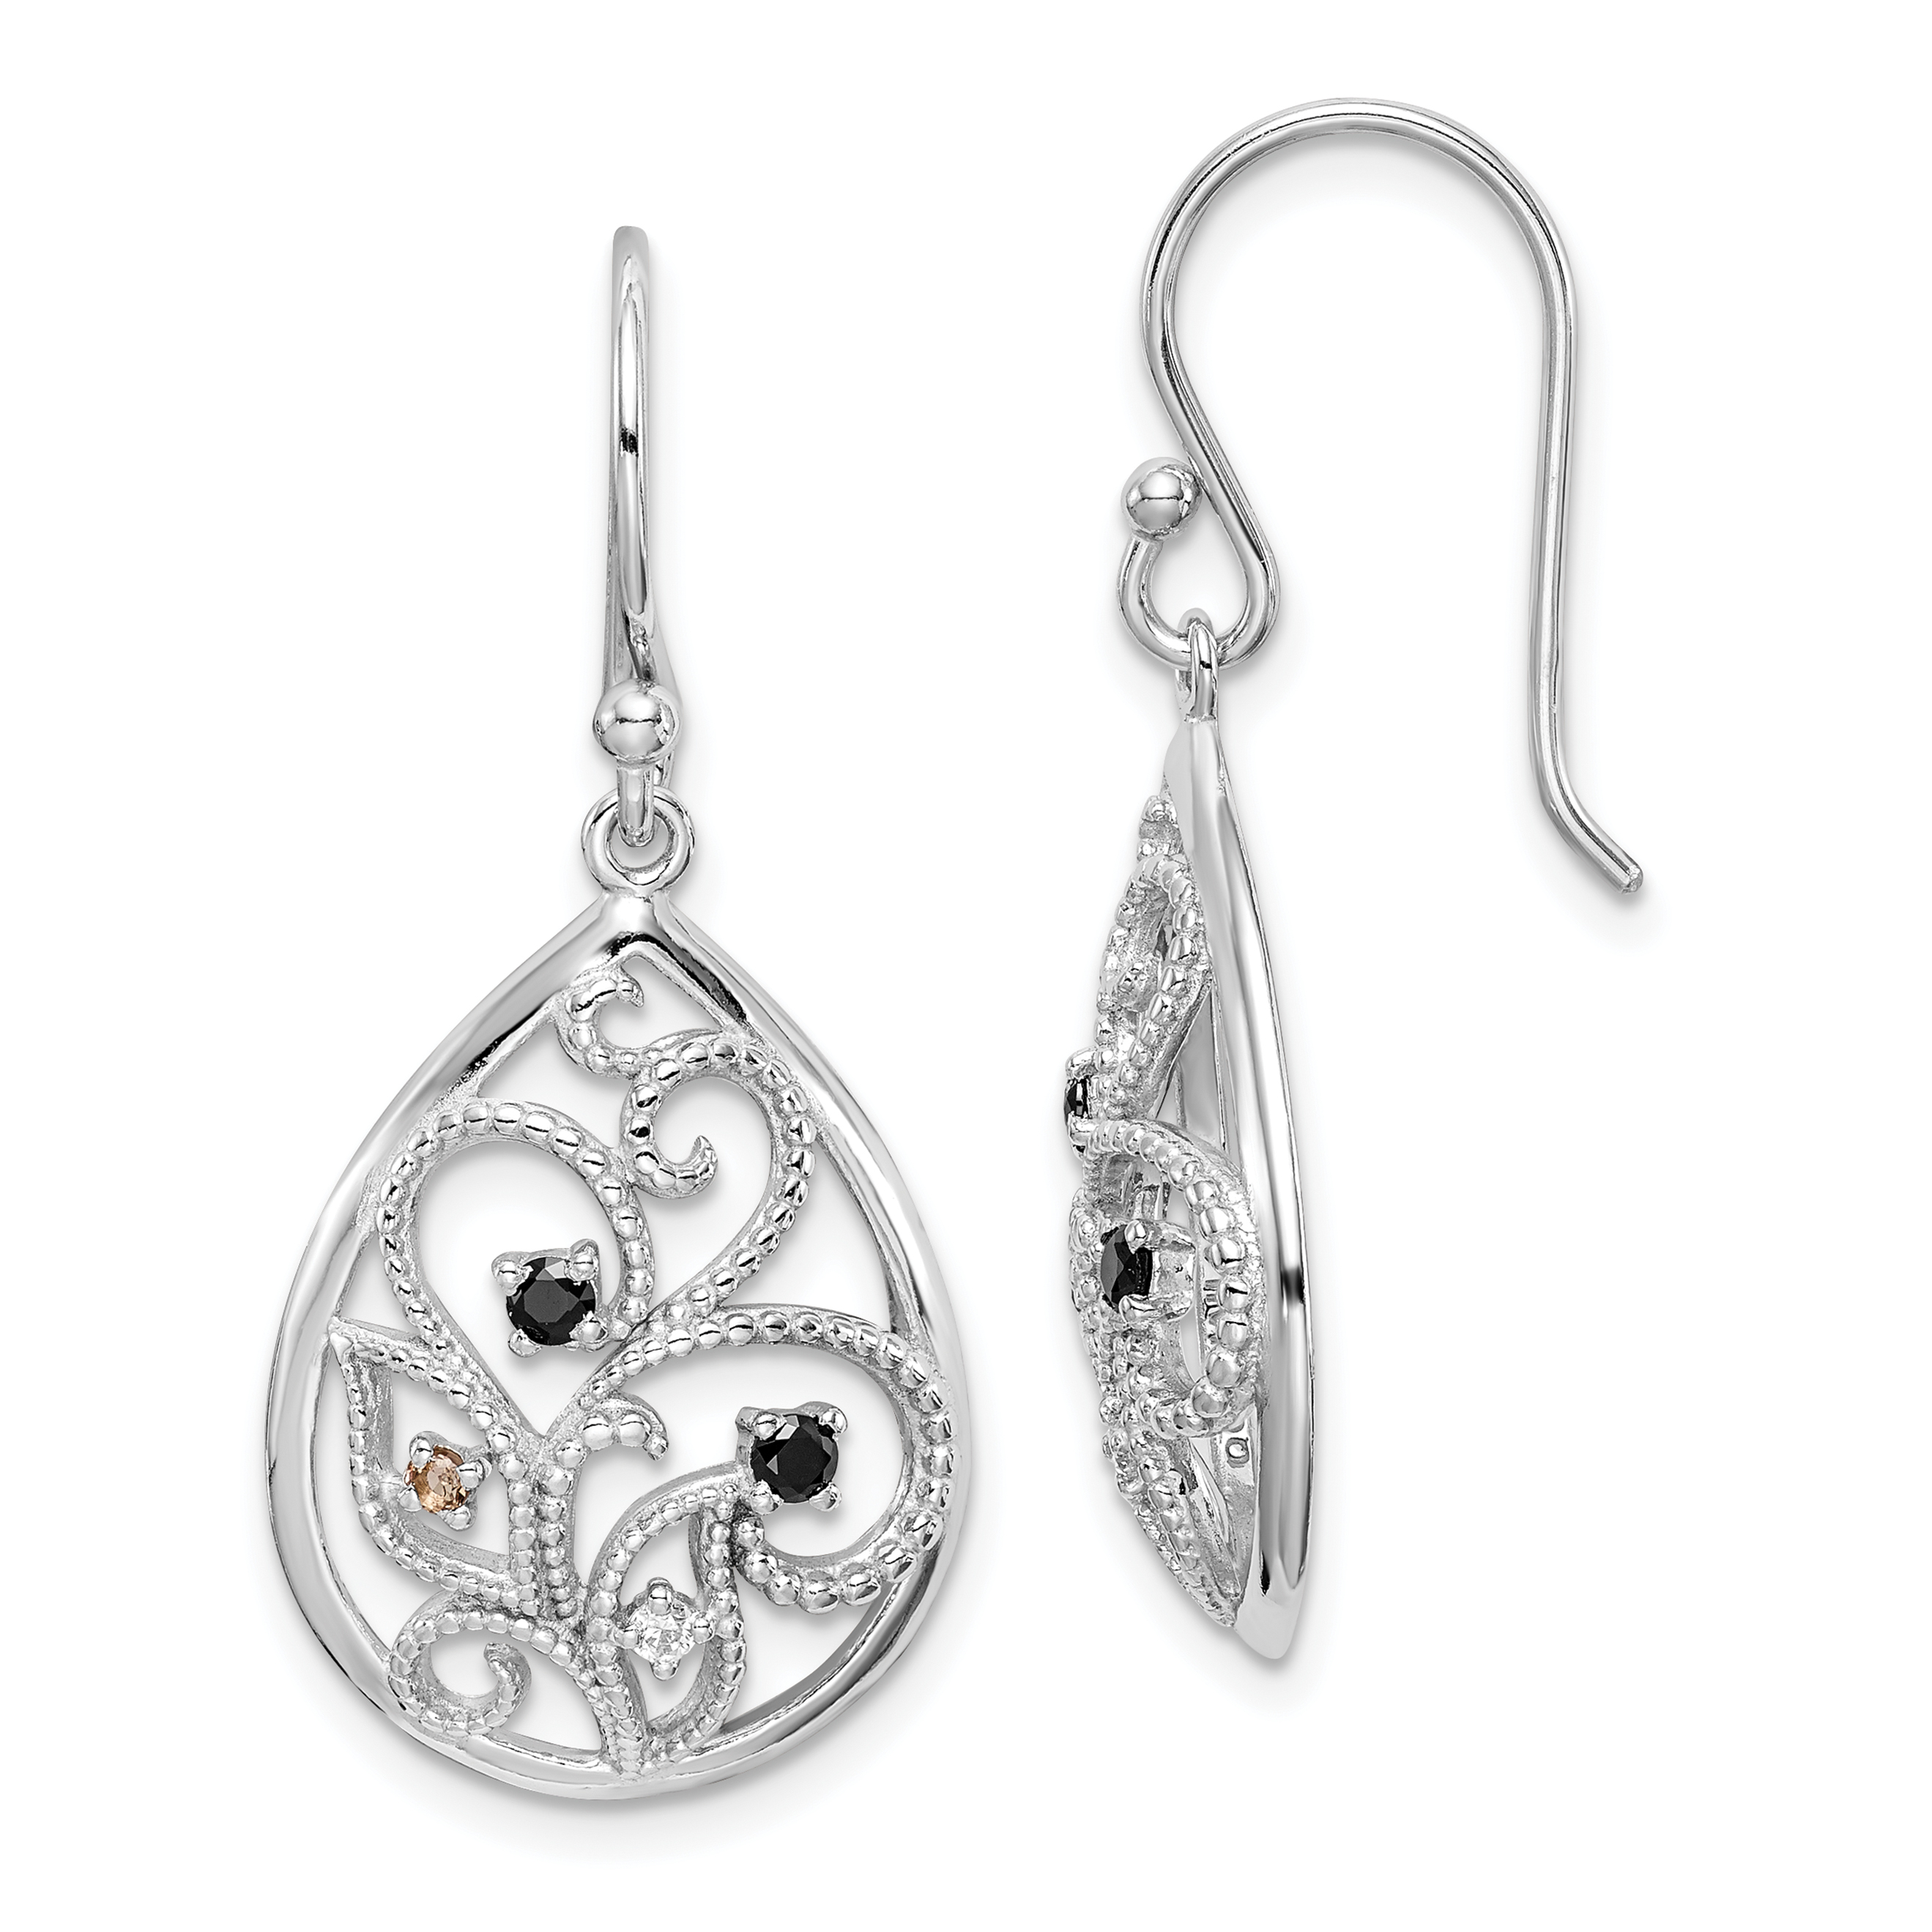 Sterling Silver Rhodium Plated Polished Textured W Cz Dangle Earrings Weight 3 25 Grams Length 38mm Width 17mm